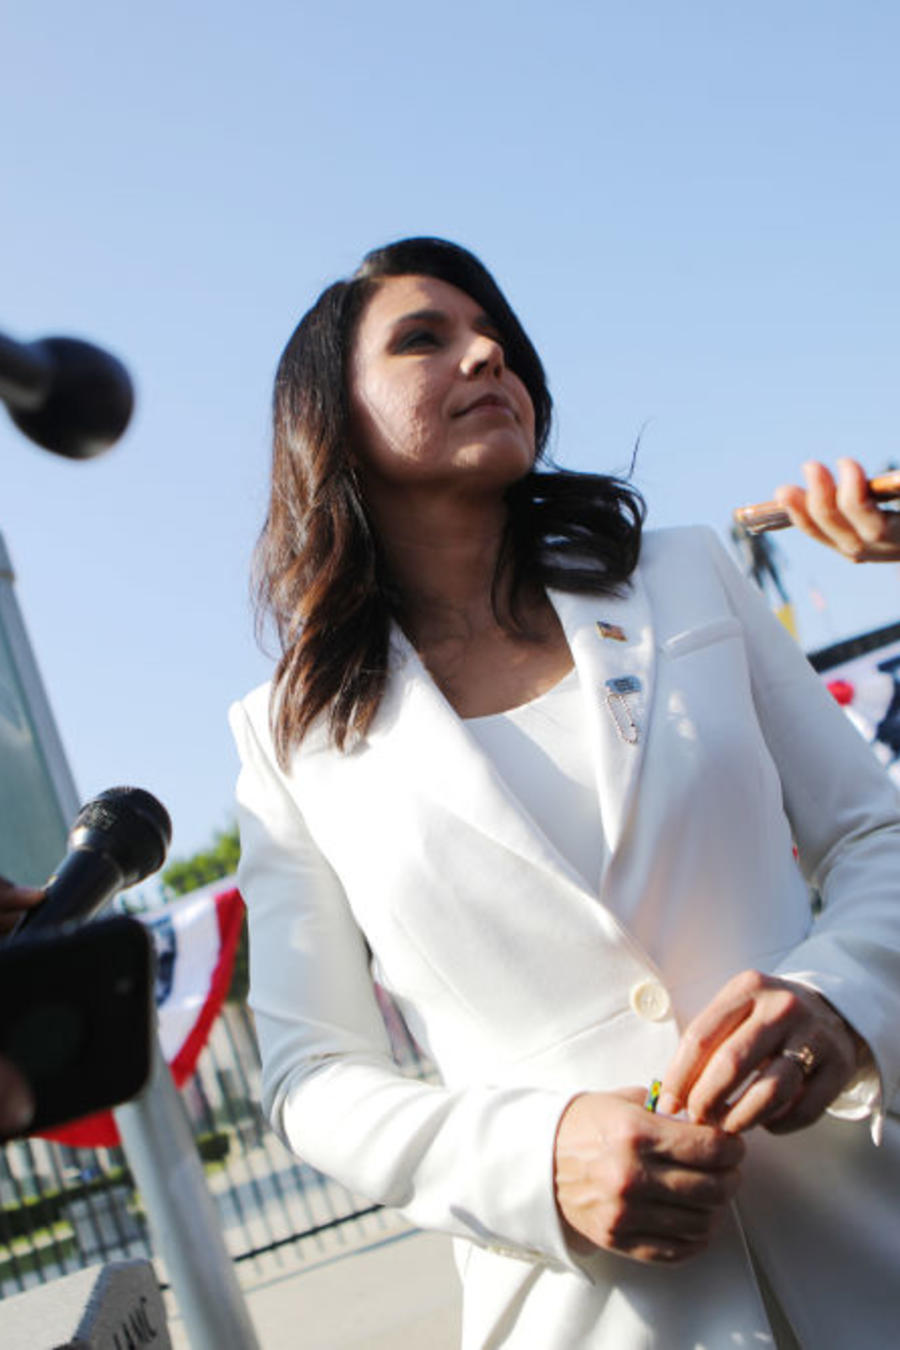 Presidential Candidate Rep. Tulsi Gabbard Attends Los Angeles Veterans Day Service